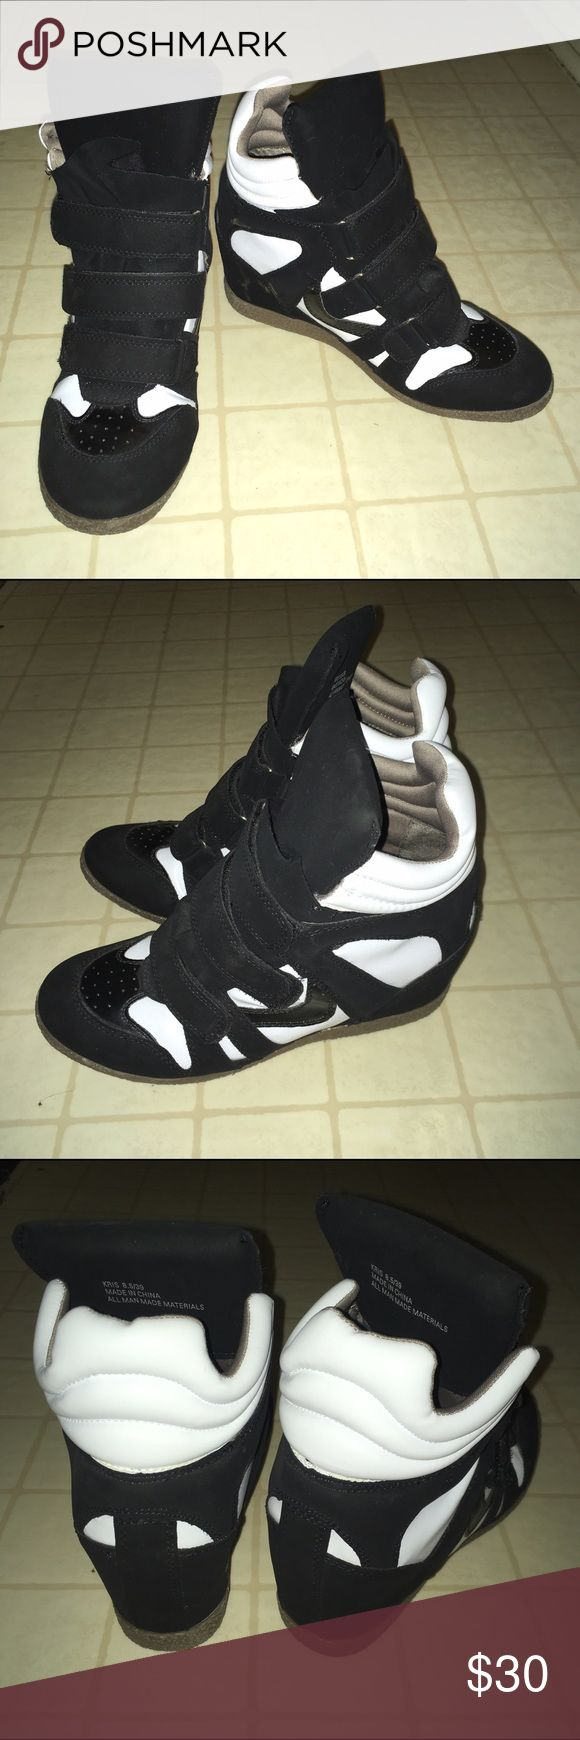 Black and white wedge sneakers Only worn once! JustFab Shoes Sneakers